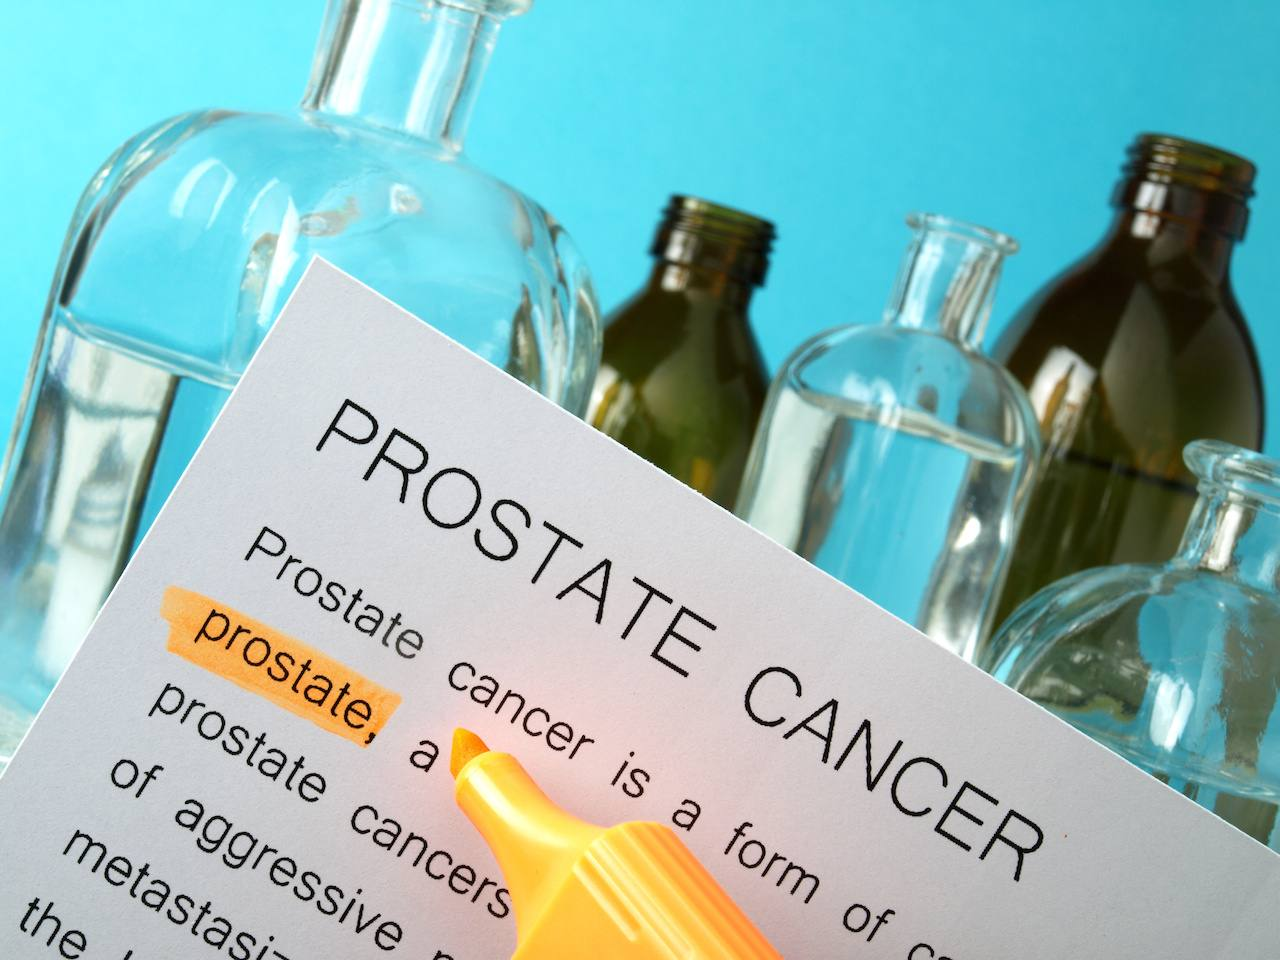 New pathway in prostate cancer cells suggests possible therapy